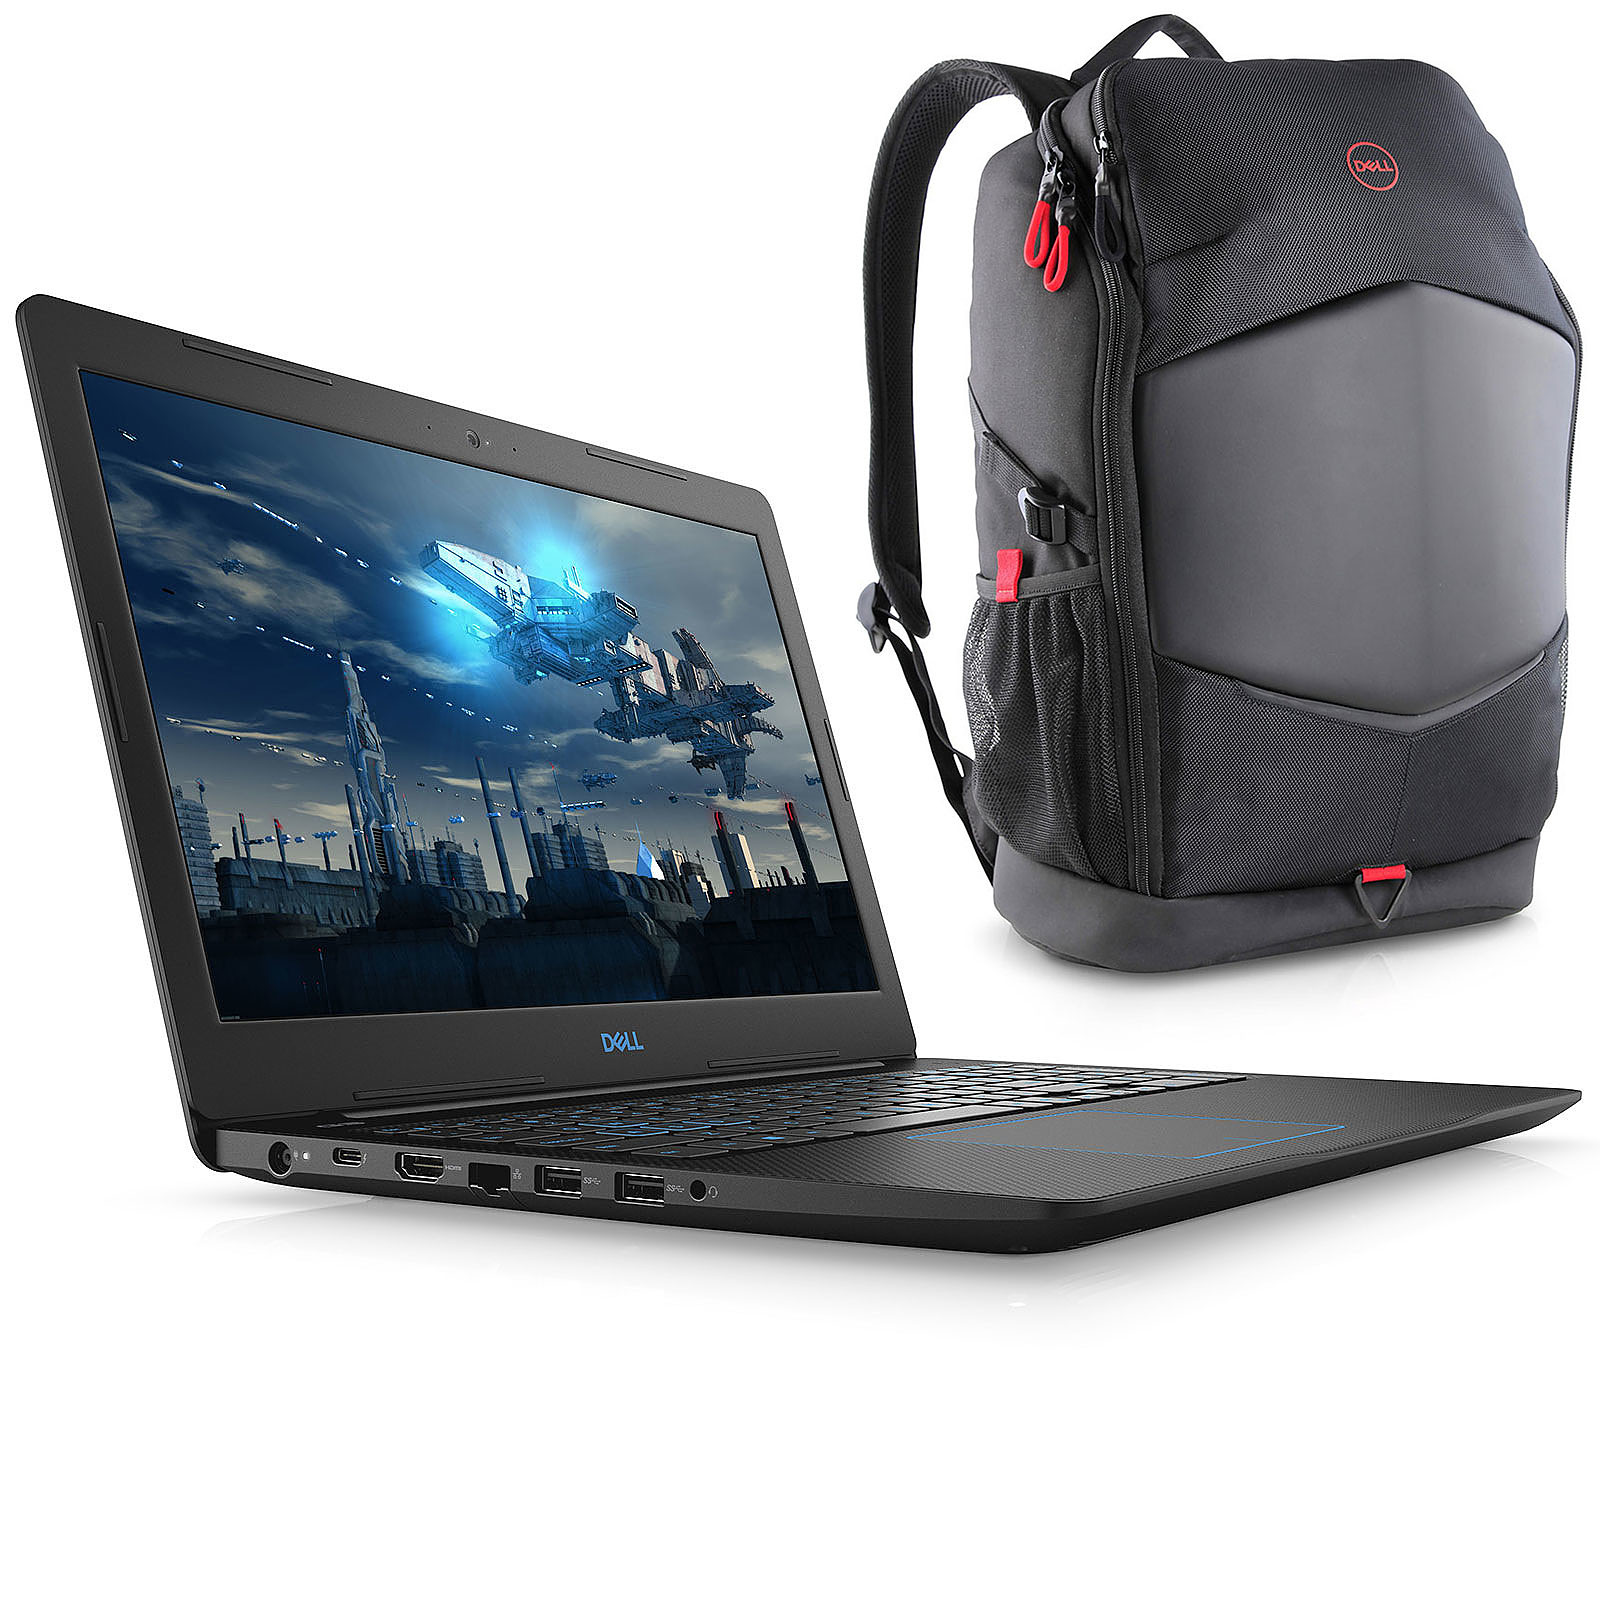 Dell G3 15 3579 (3579-4190) + sac à dos Dell Pursuit Backpack OFFERT !